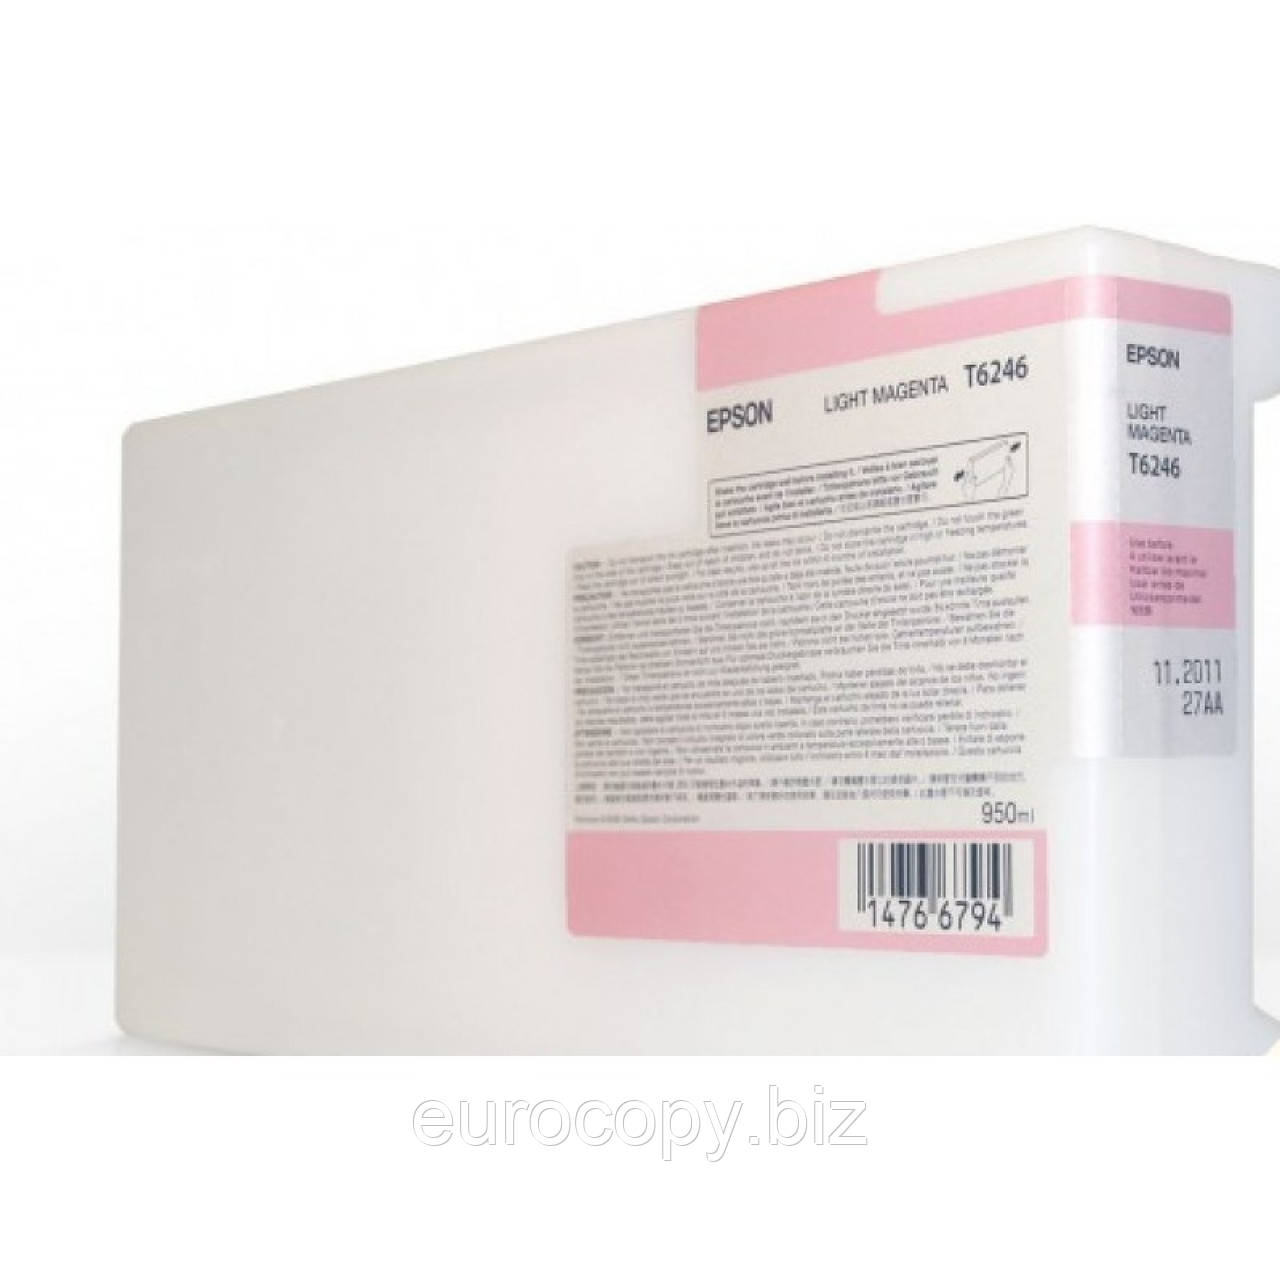 Картридж Epson T6246 для SP-GS6000 Light Magenta (C13T624600) Original